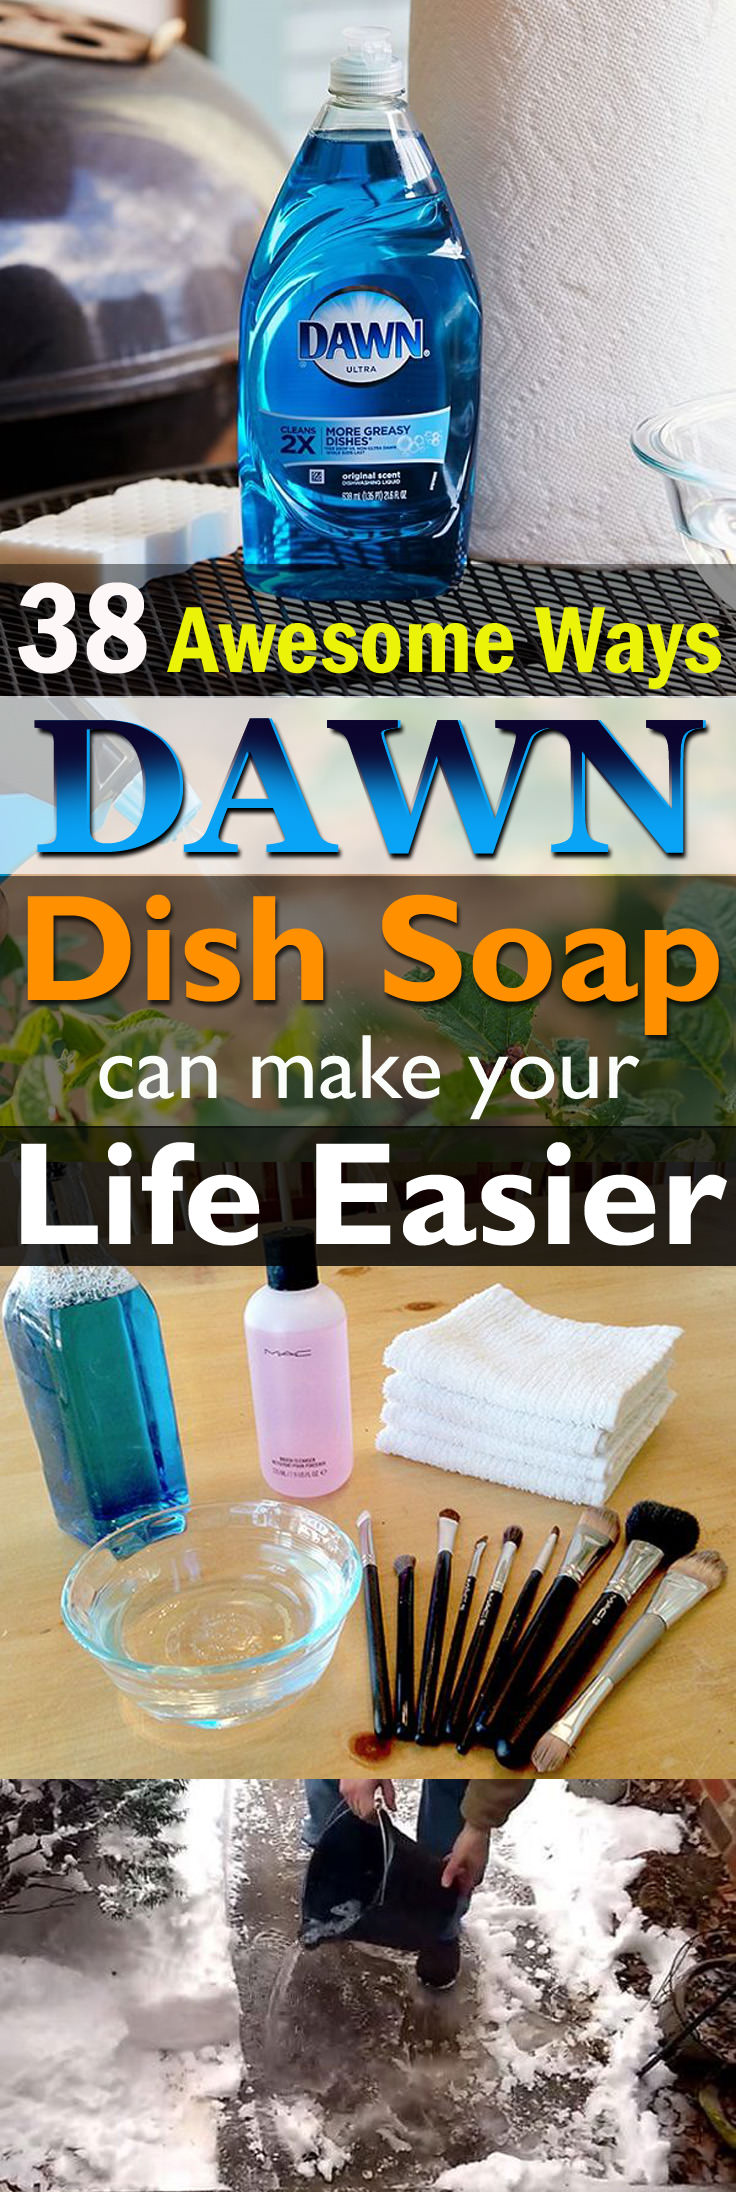 38 Amazing and unique ways to use Dawn Dish Soap in your home and garden. You'll be surprised!